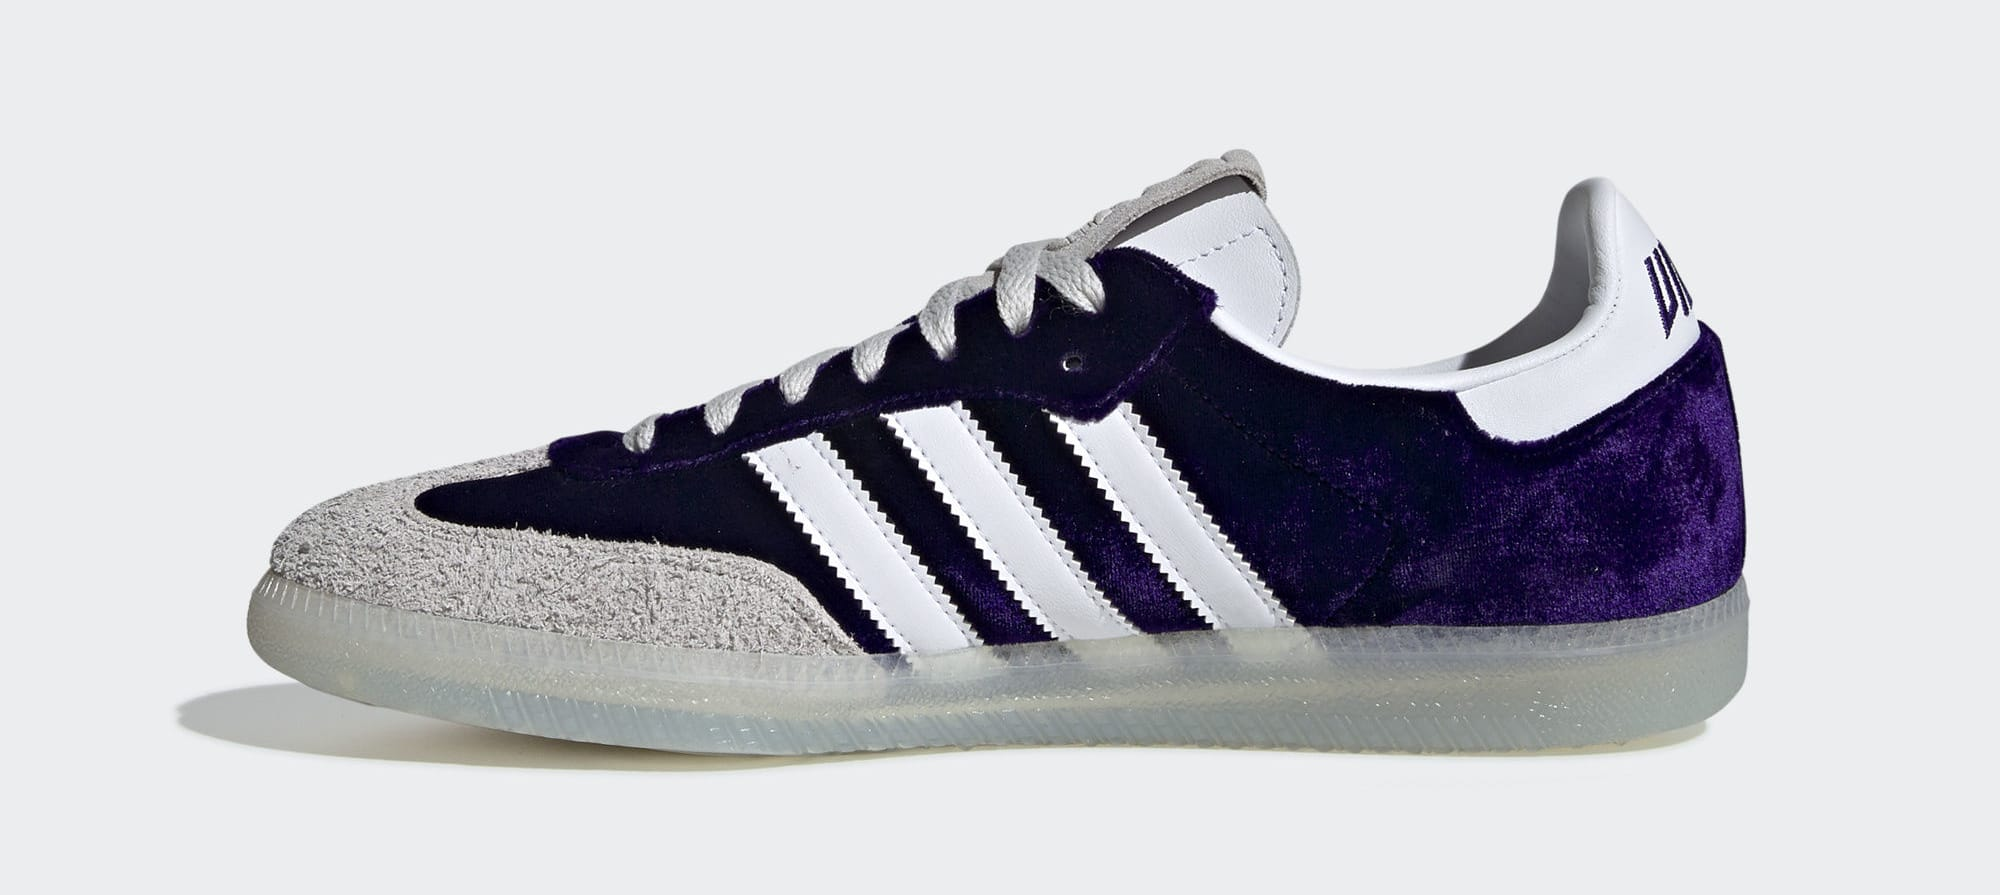 Adidas Is Celebrating 420 With the 'Purple Haze' Samba